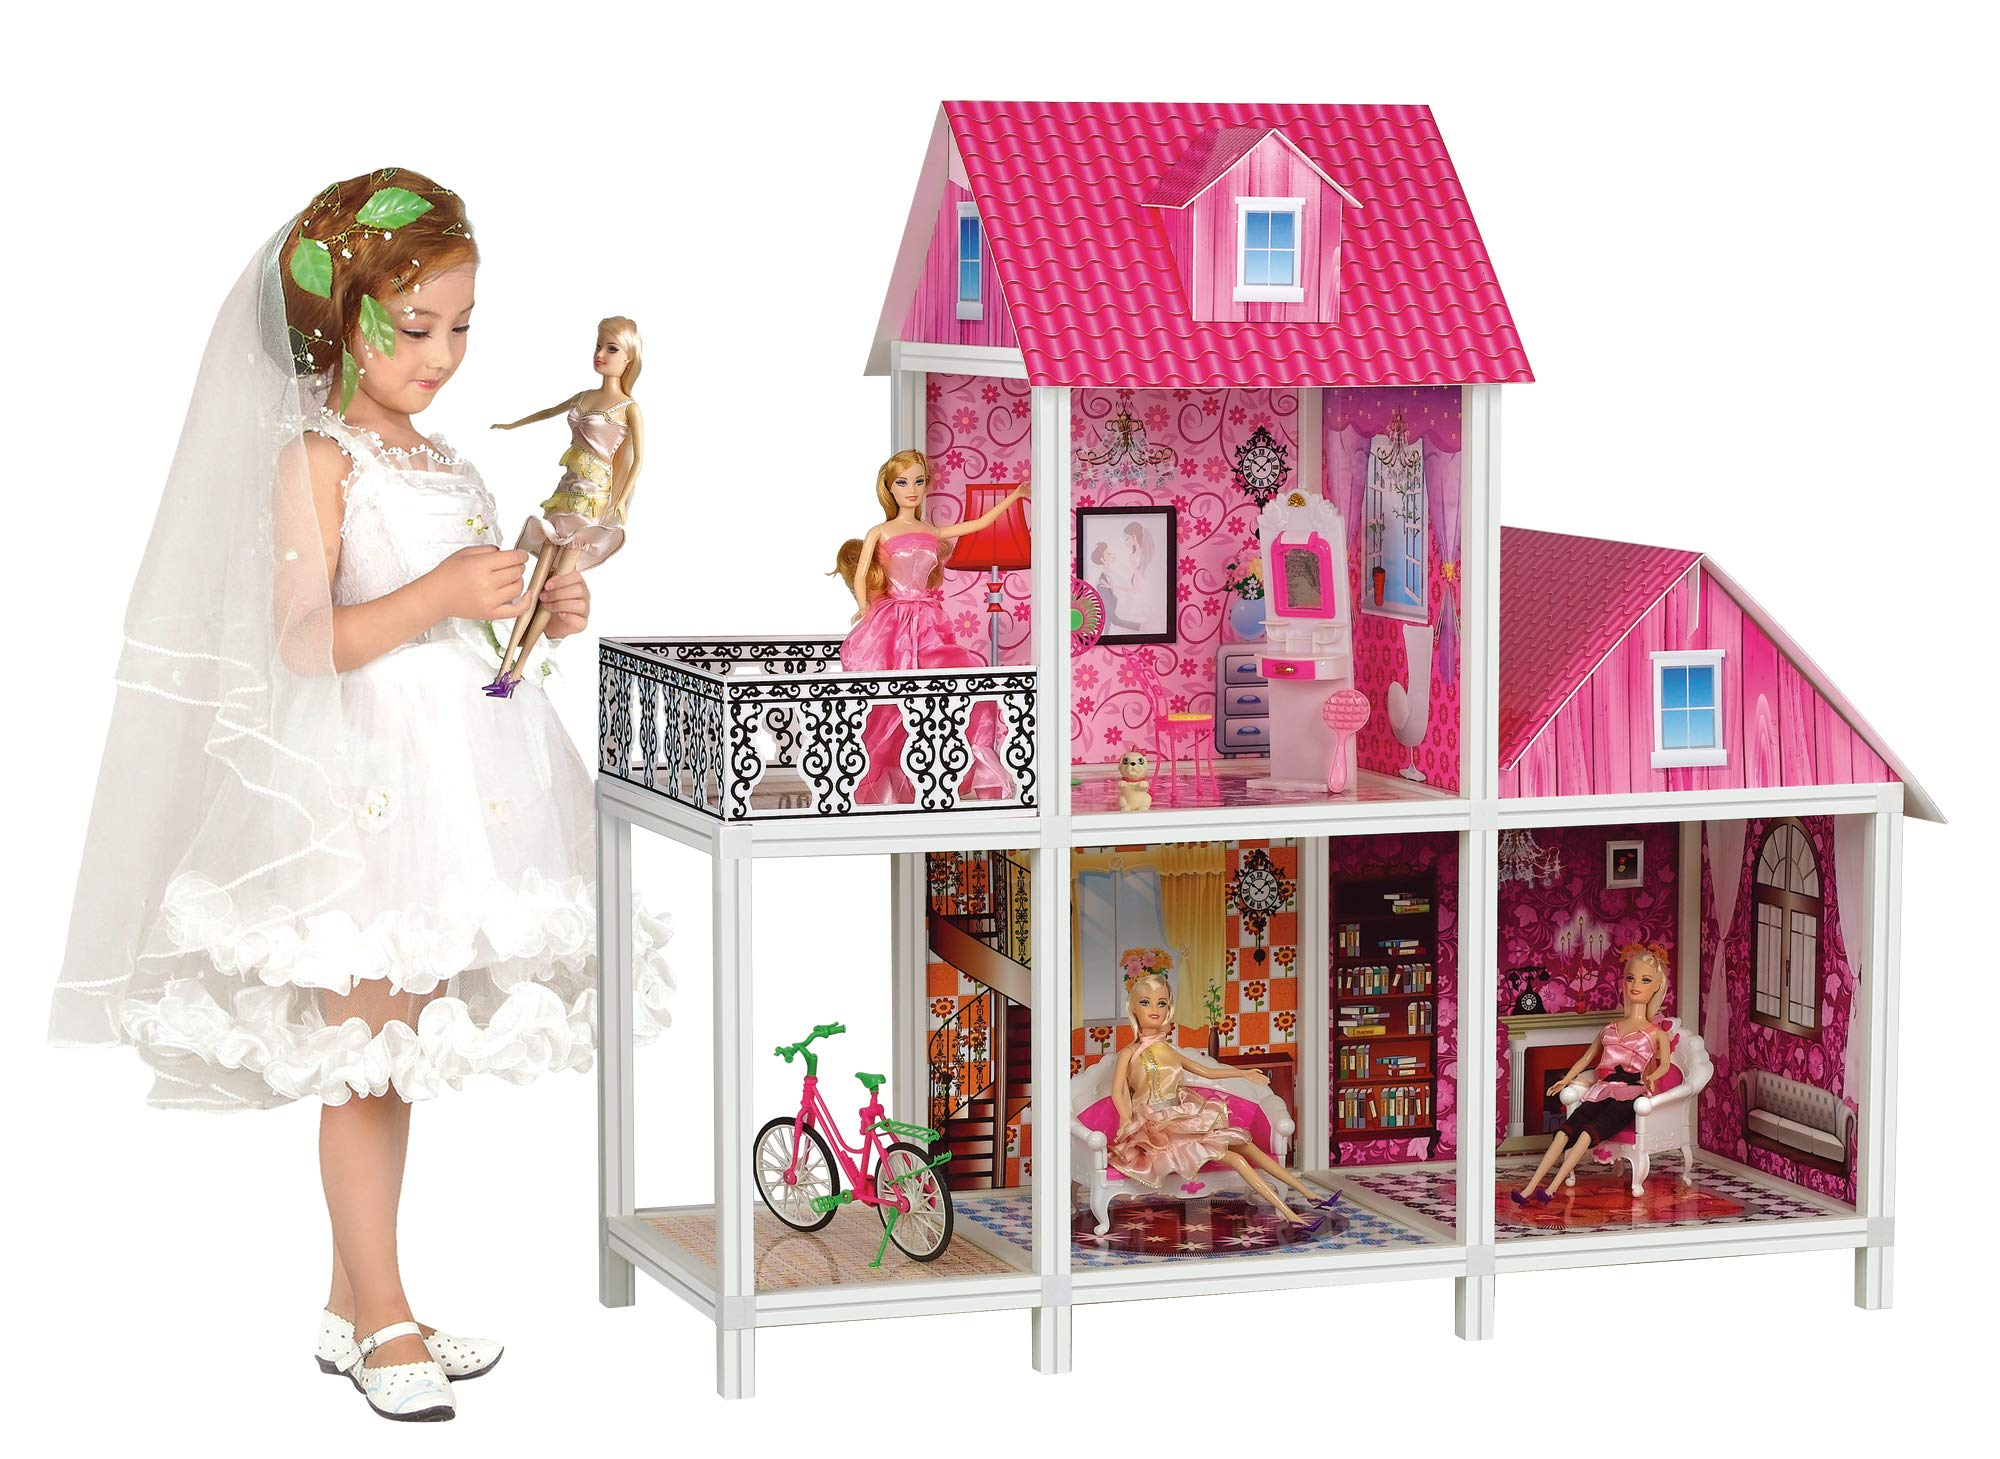 Bettina 39'' Large Plastic Dollhouse with 3 Dolls, Big Playhouse Set with Furniture, Pink by Bettina (Image #1)